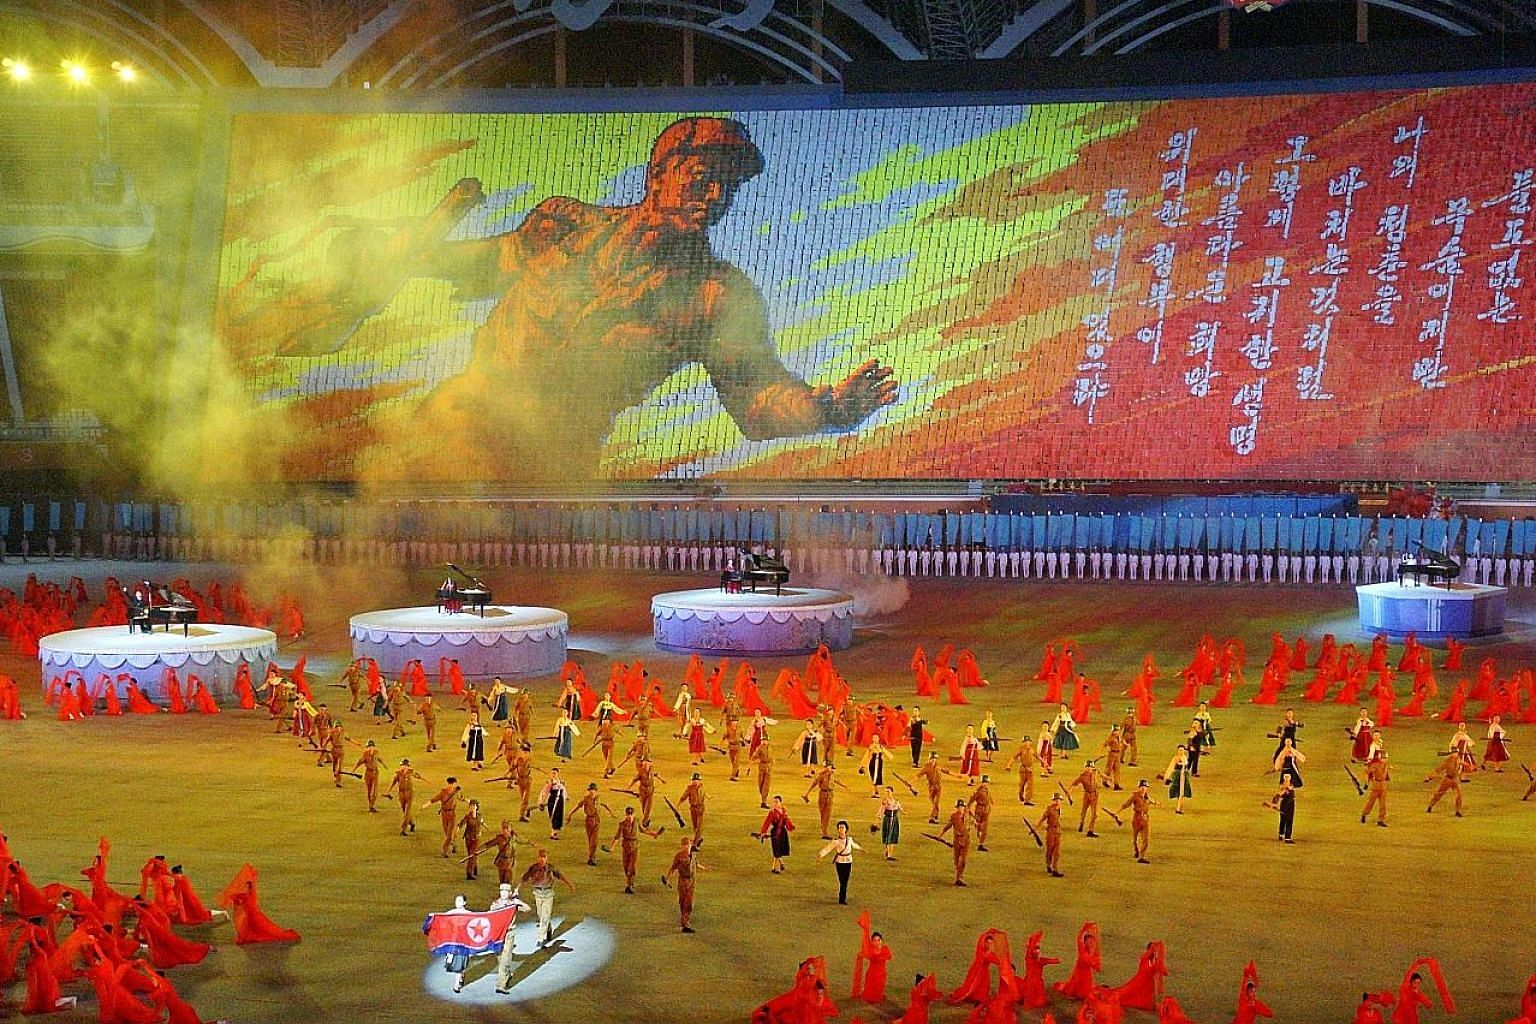 A display during the Mass Games held last Friday at Pyongyang's May Day Stadium. The showcase included the history of North Korea, from its founding in 1948 to talks with South Korean President Moon Jae-in in April.